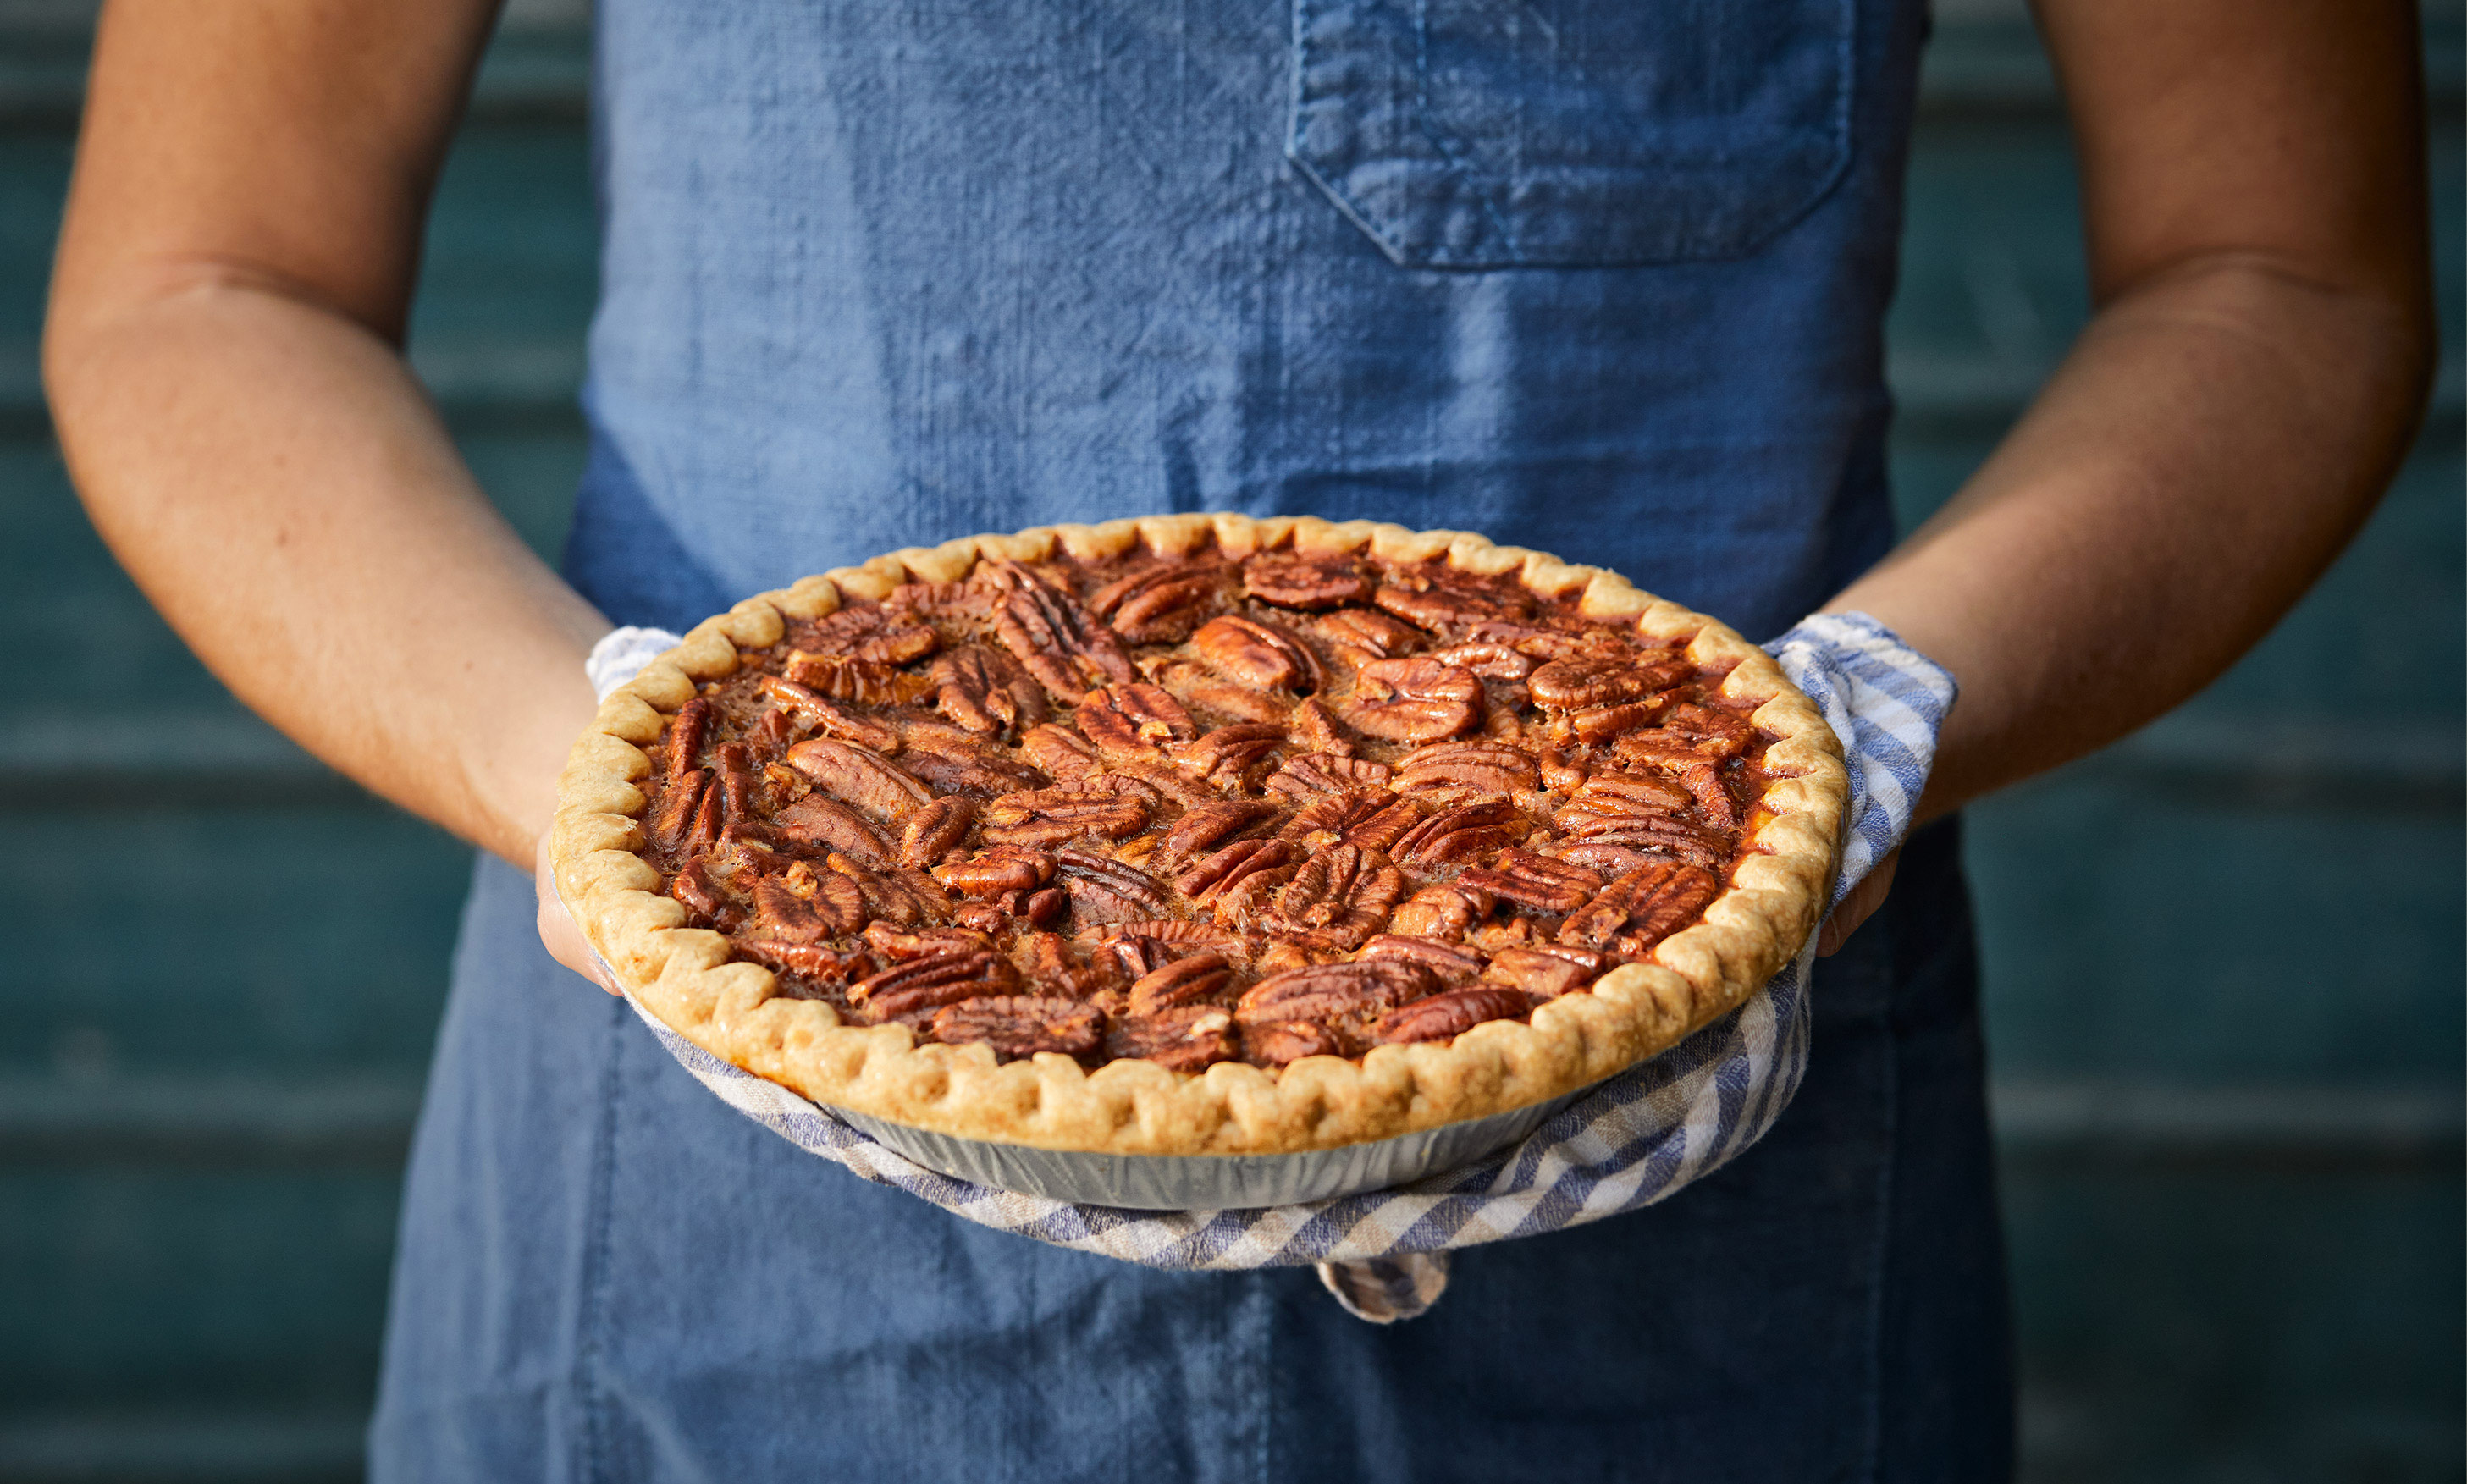 Person holding a pecan pie